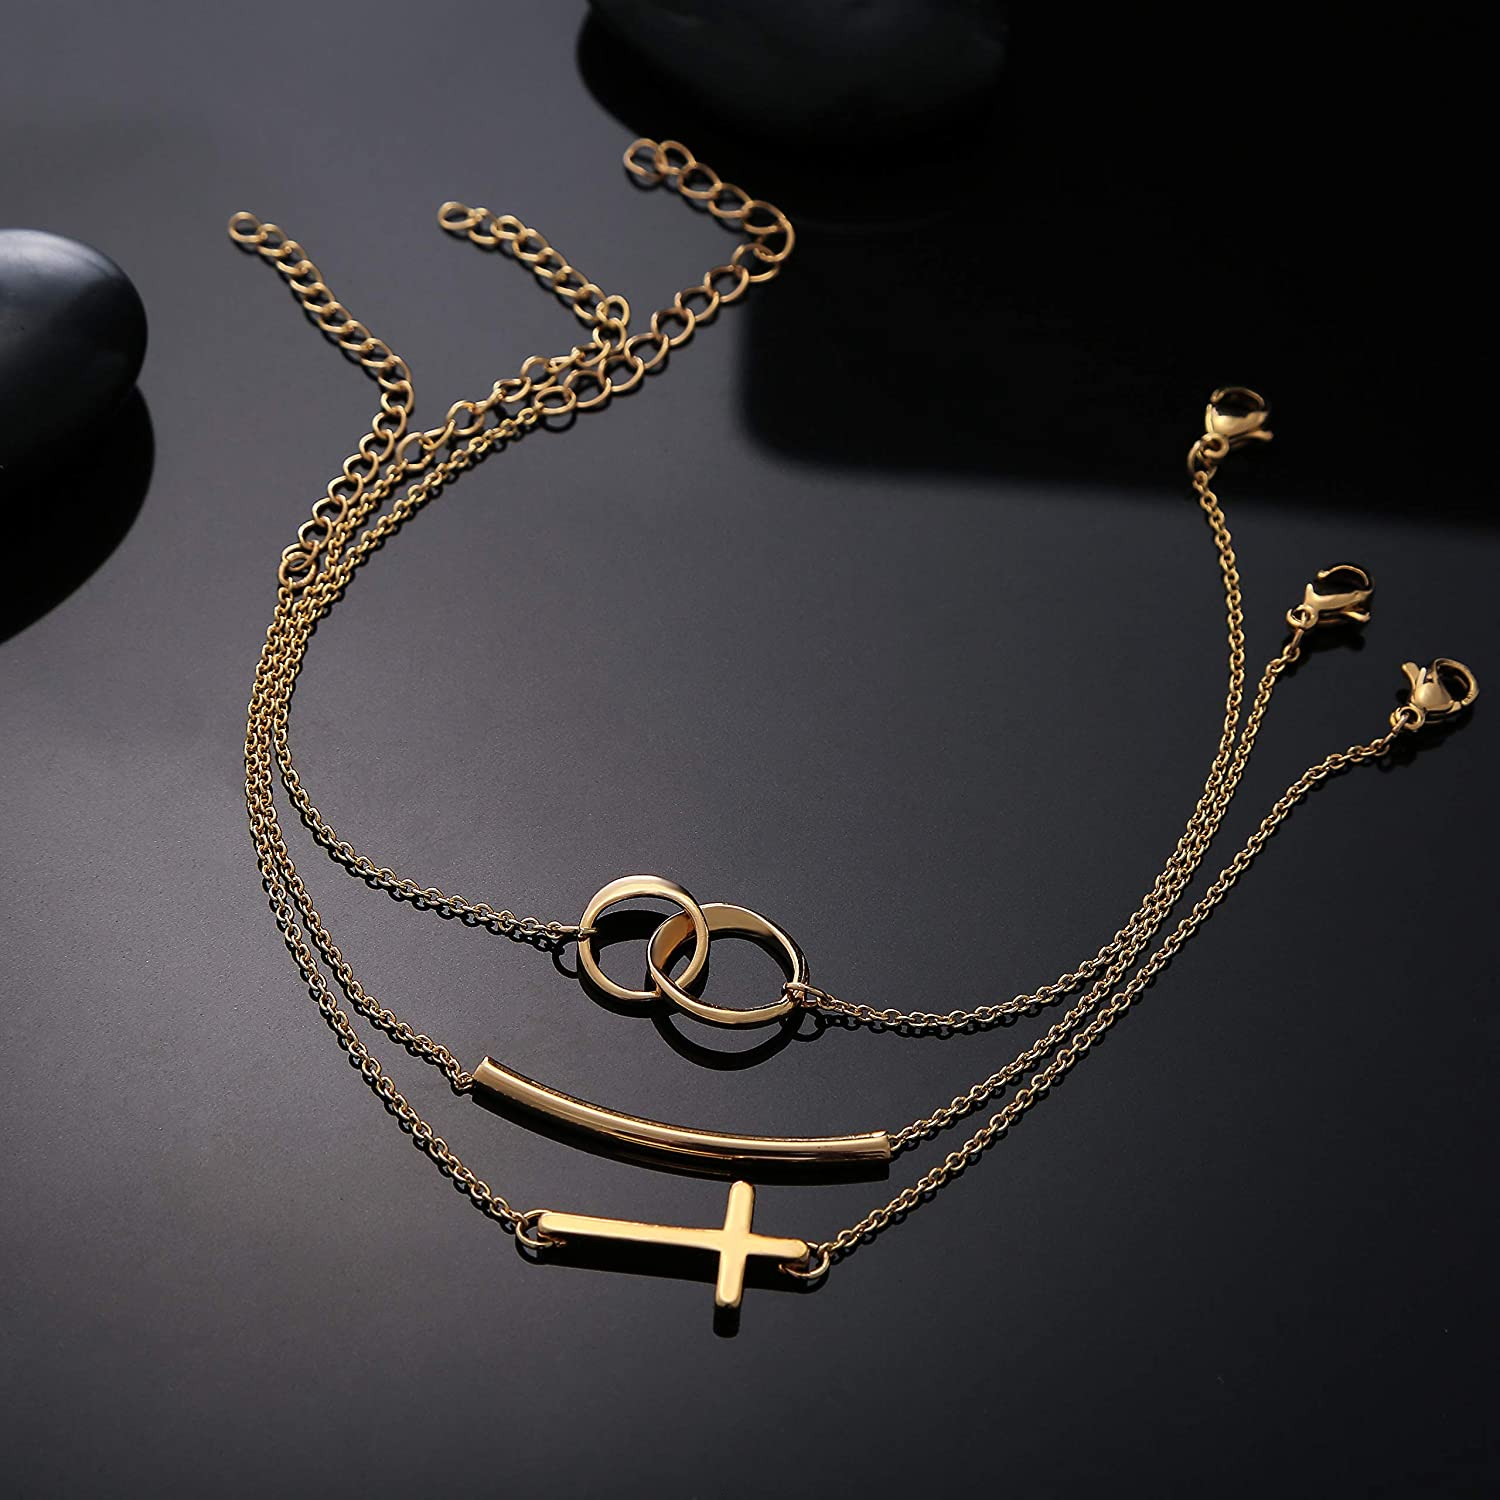 Zealmer Delicate Layered Gold Chain Coin Bracelet Set Bead Pearl Curved Tube 2 Pieces Women ERP-238-86